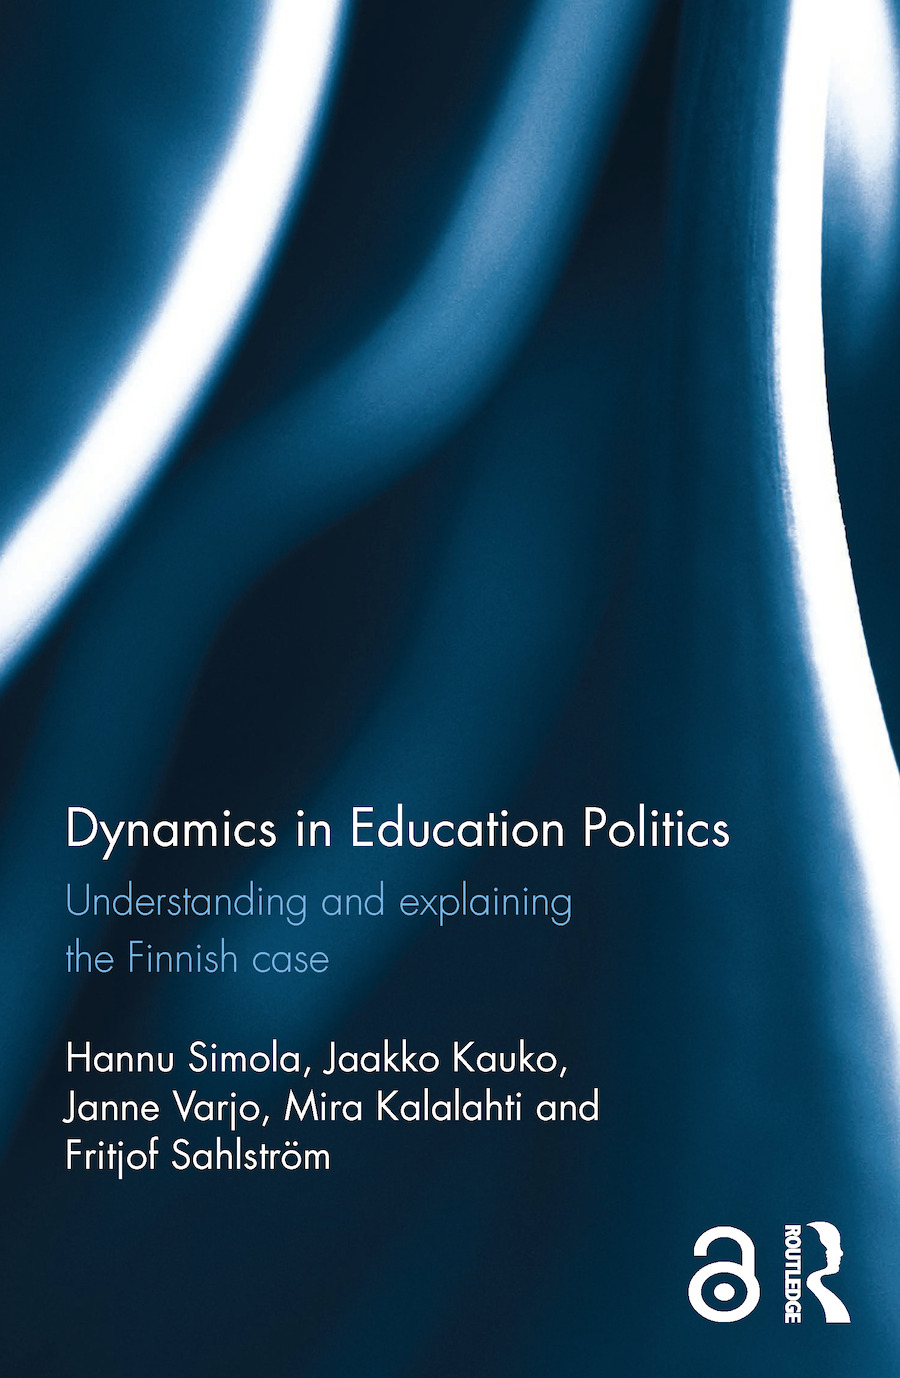 Dynamics in Education Politics: Understanding and explaining the Finnish case book cover